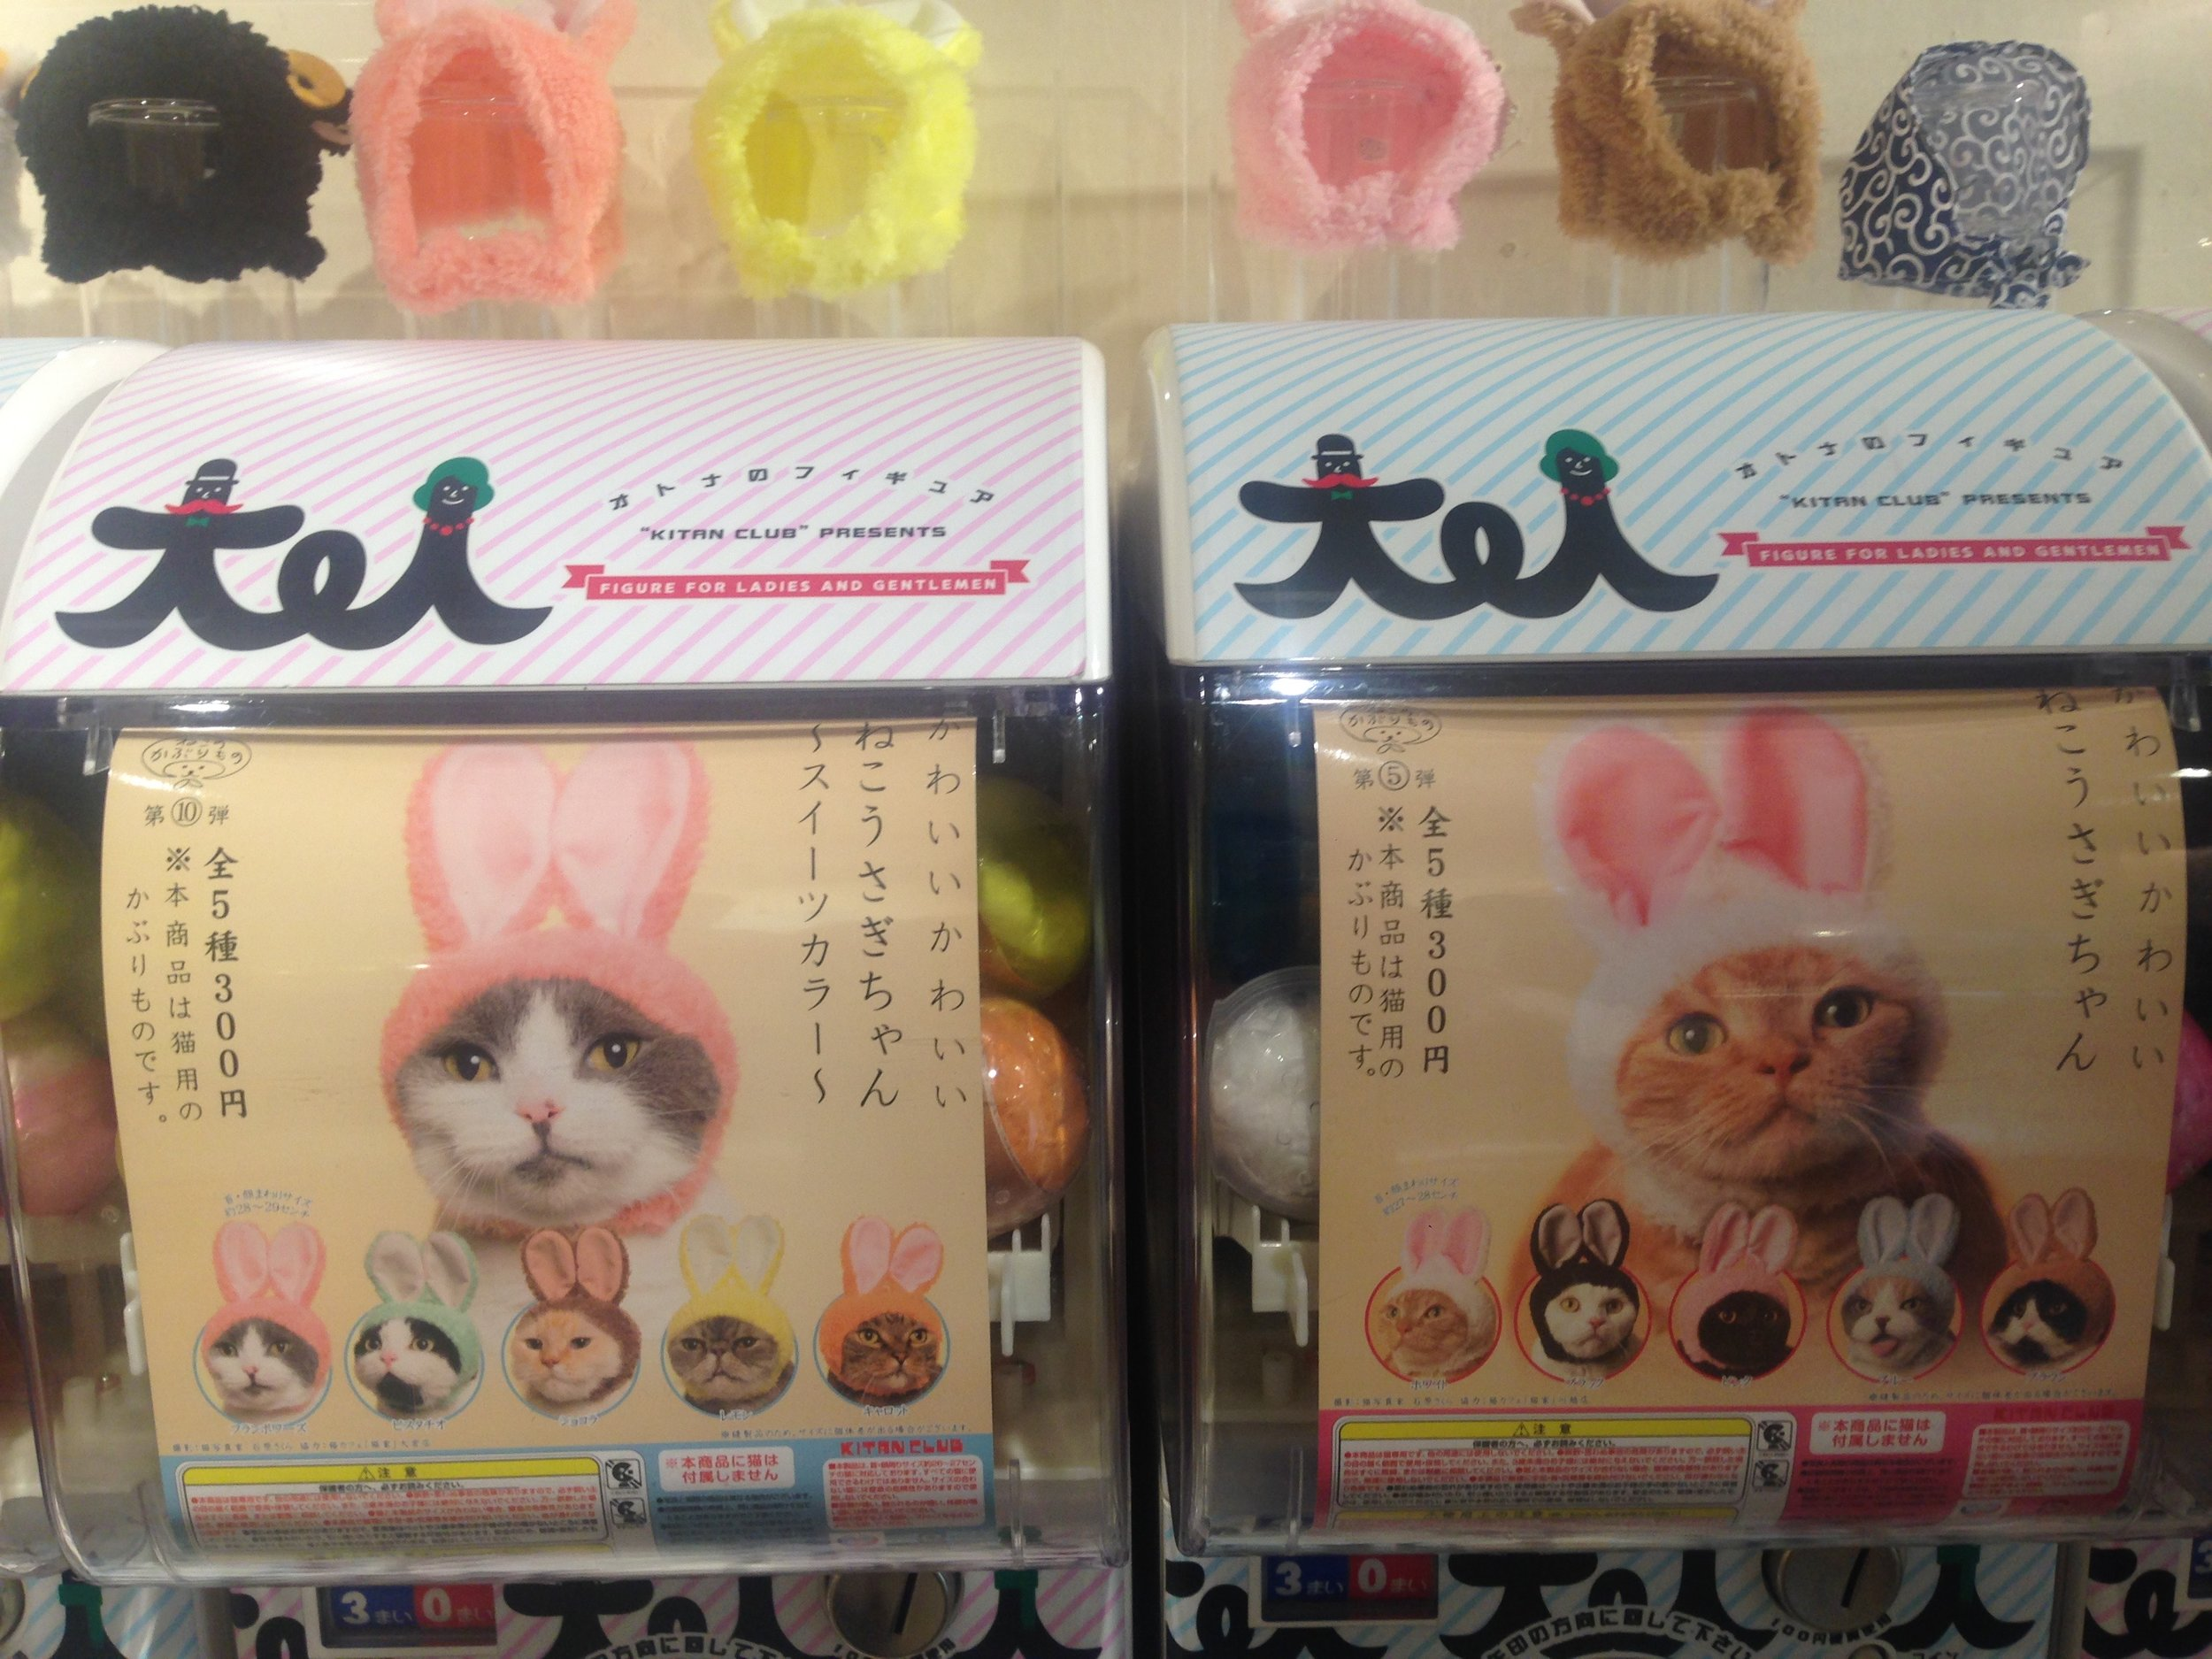 Guess there's a market for cats that wanna be bunnies